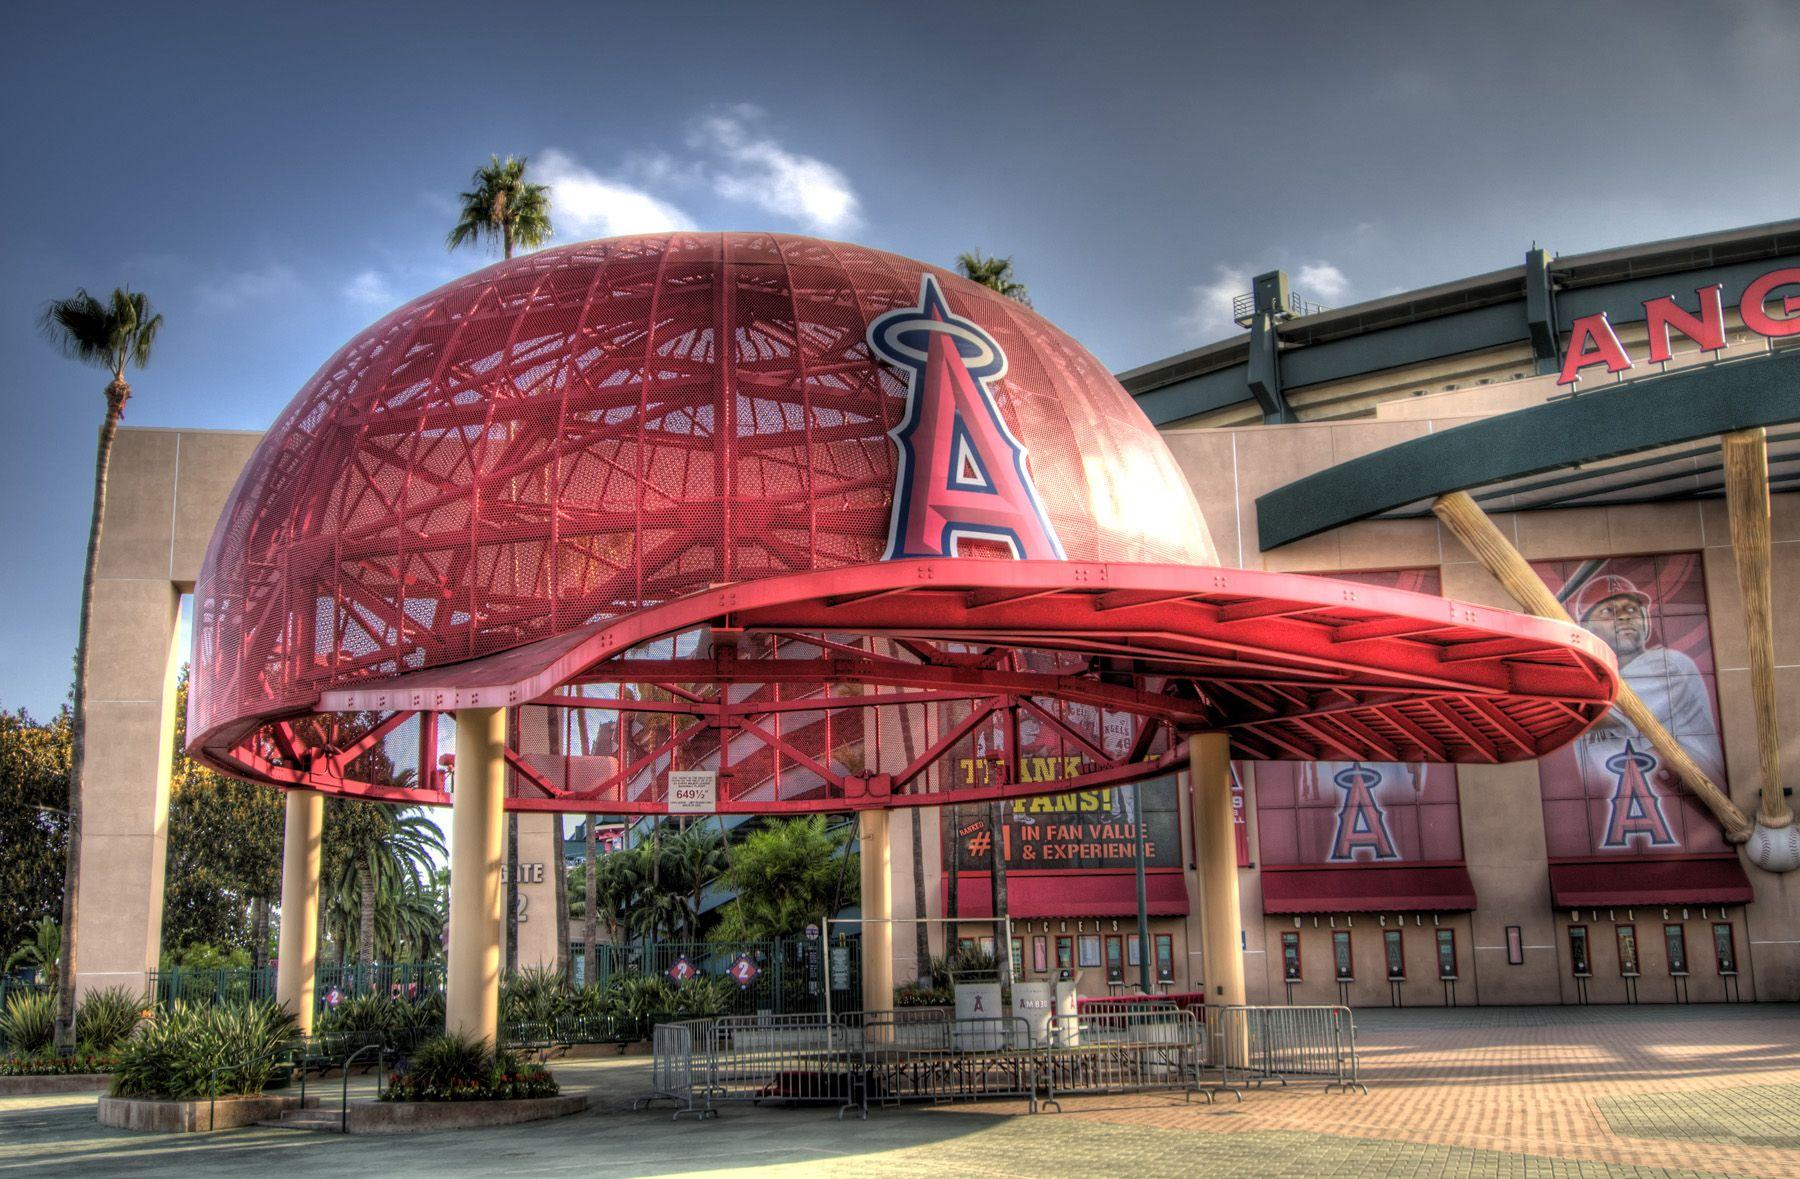 La Angels Wallpapers For Android ✓ Gadget and PC Wallpapers